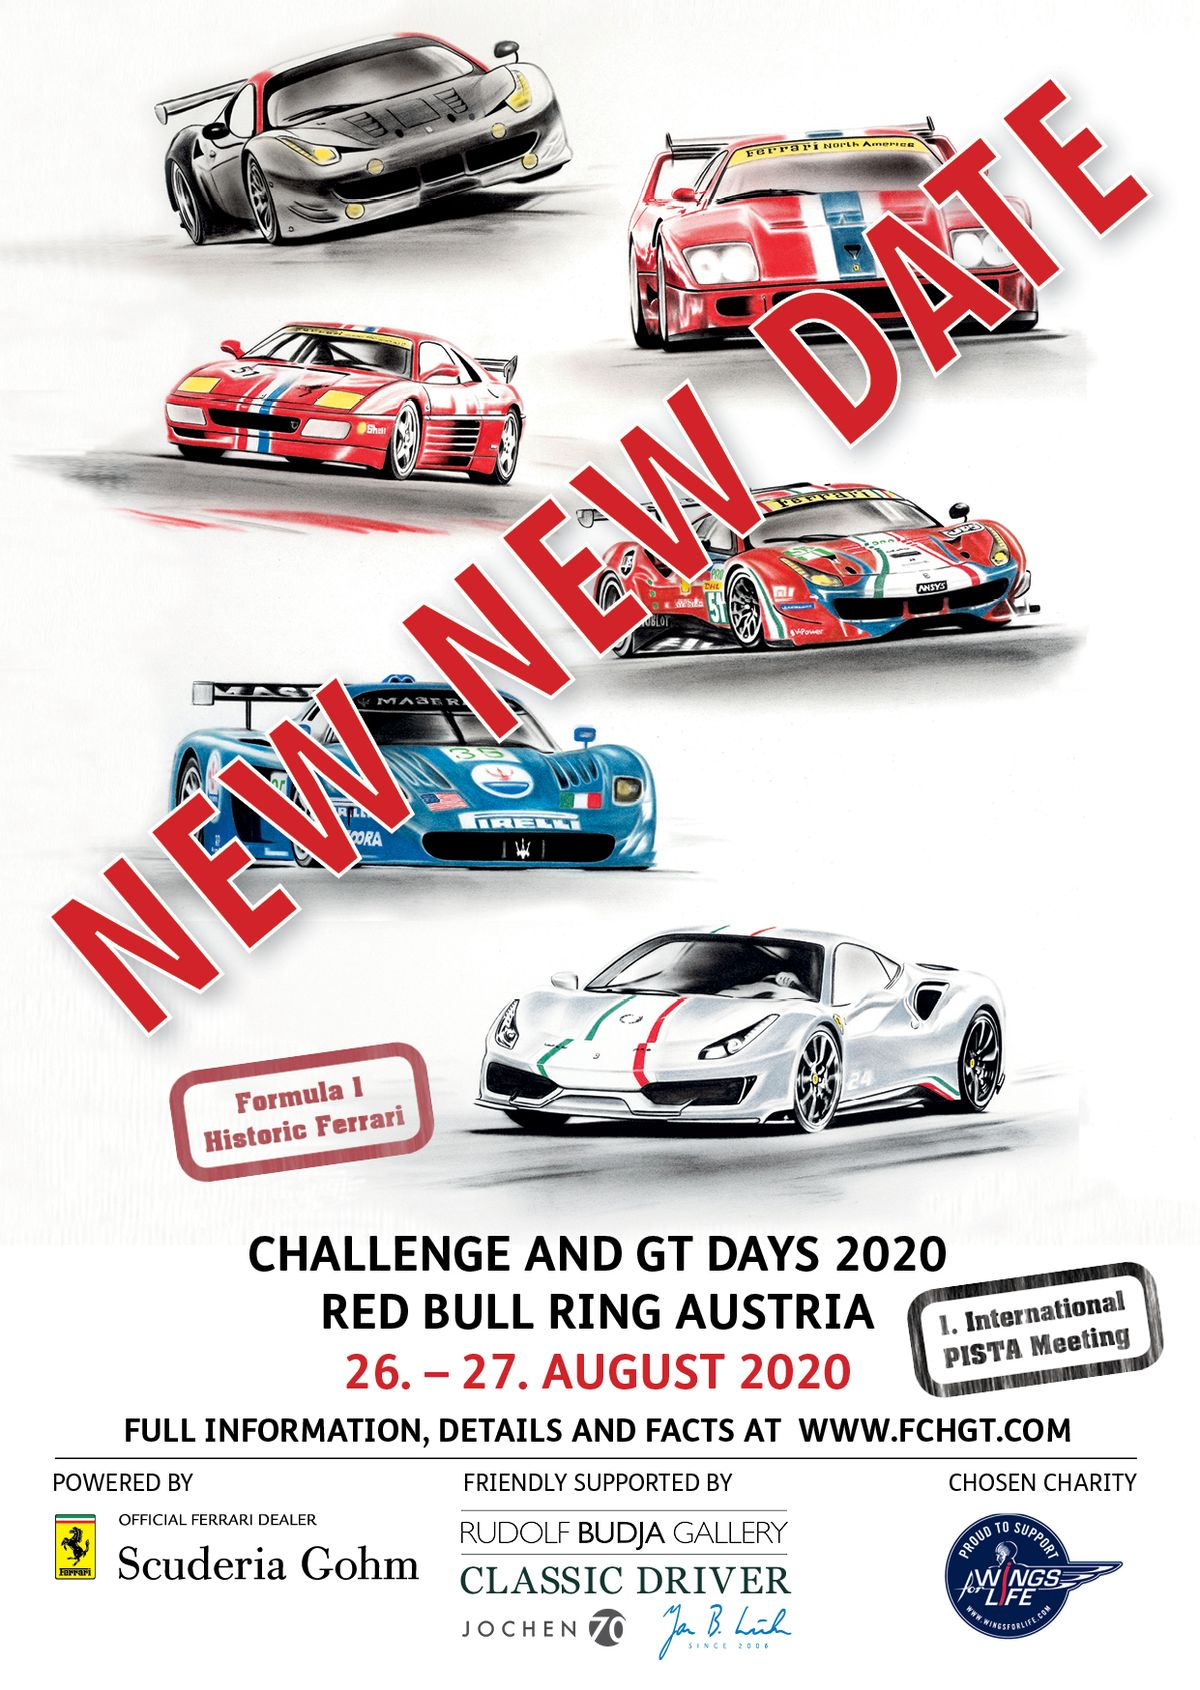 Challenge and GT Days 2020